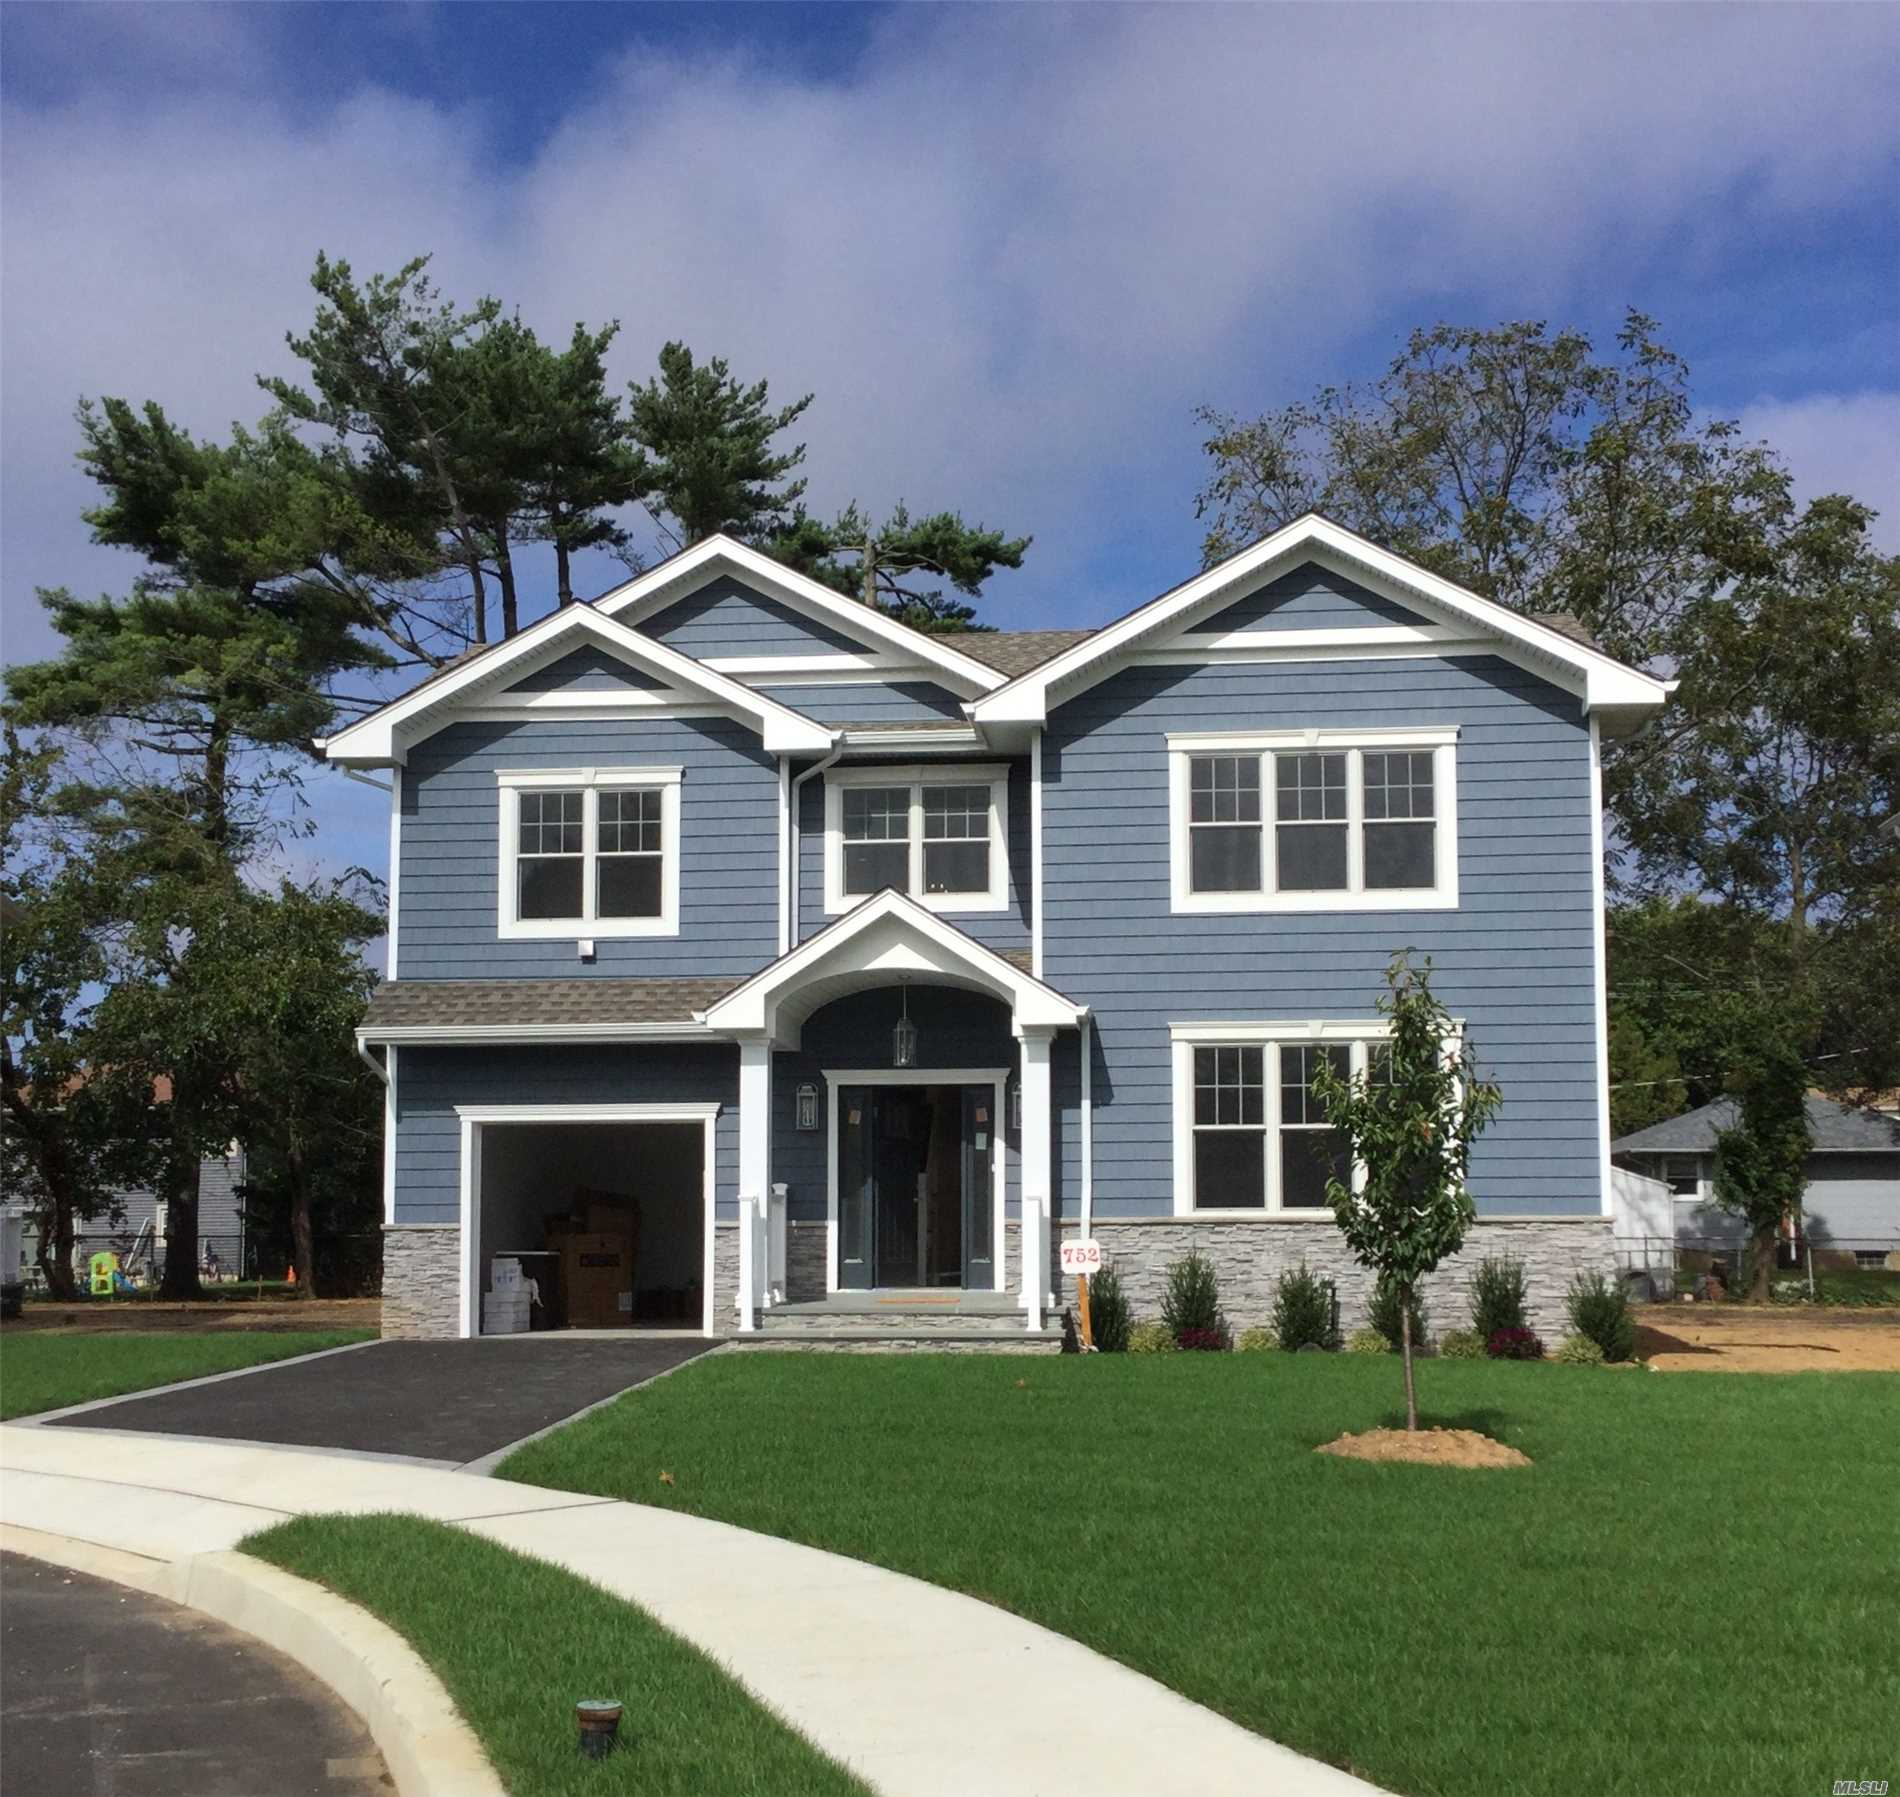 Brand New 5 Bedroom Colonial On New Cul De Sac. Beautiful Molding Package. Chef's Eik, Family Room W/ Coffered Ceiling And Gas Fpl. Master En Suite W/ Spa Bath And Walk In Closets. Laundry Room On 2nd Floor. Hw Floors Throughout. Top Of The Line Finishes. 9 Ft Ceilings On Main And Basement.